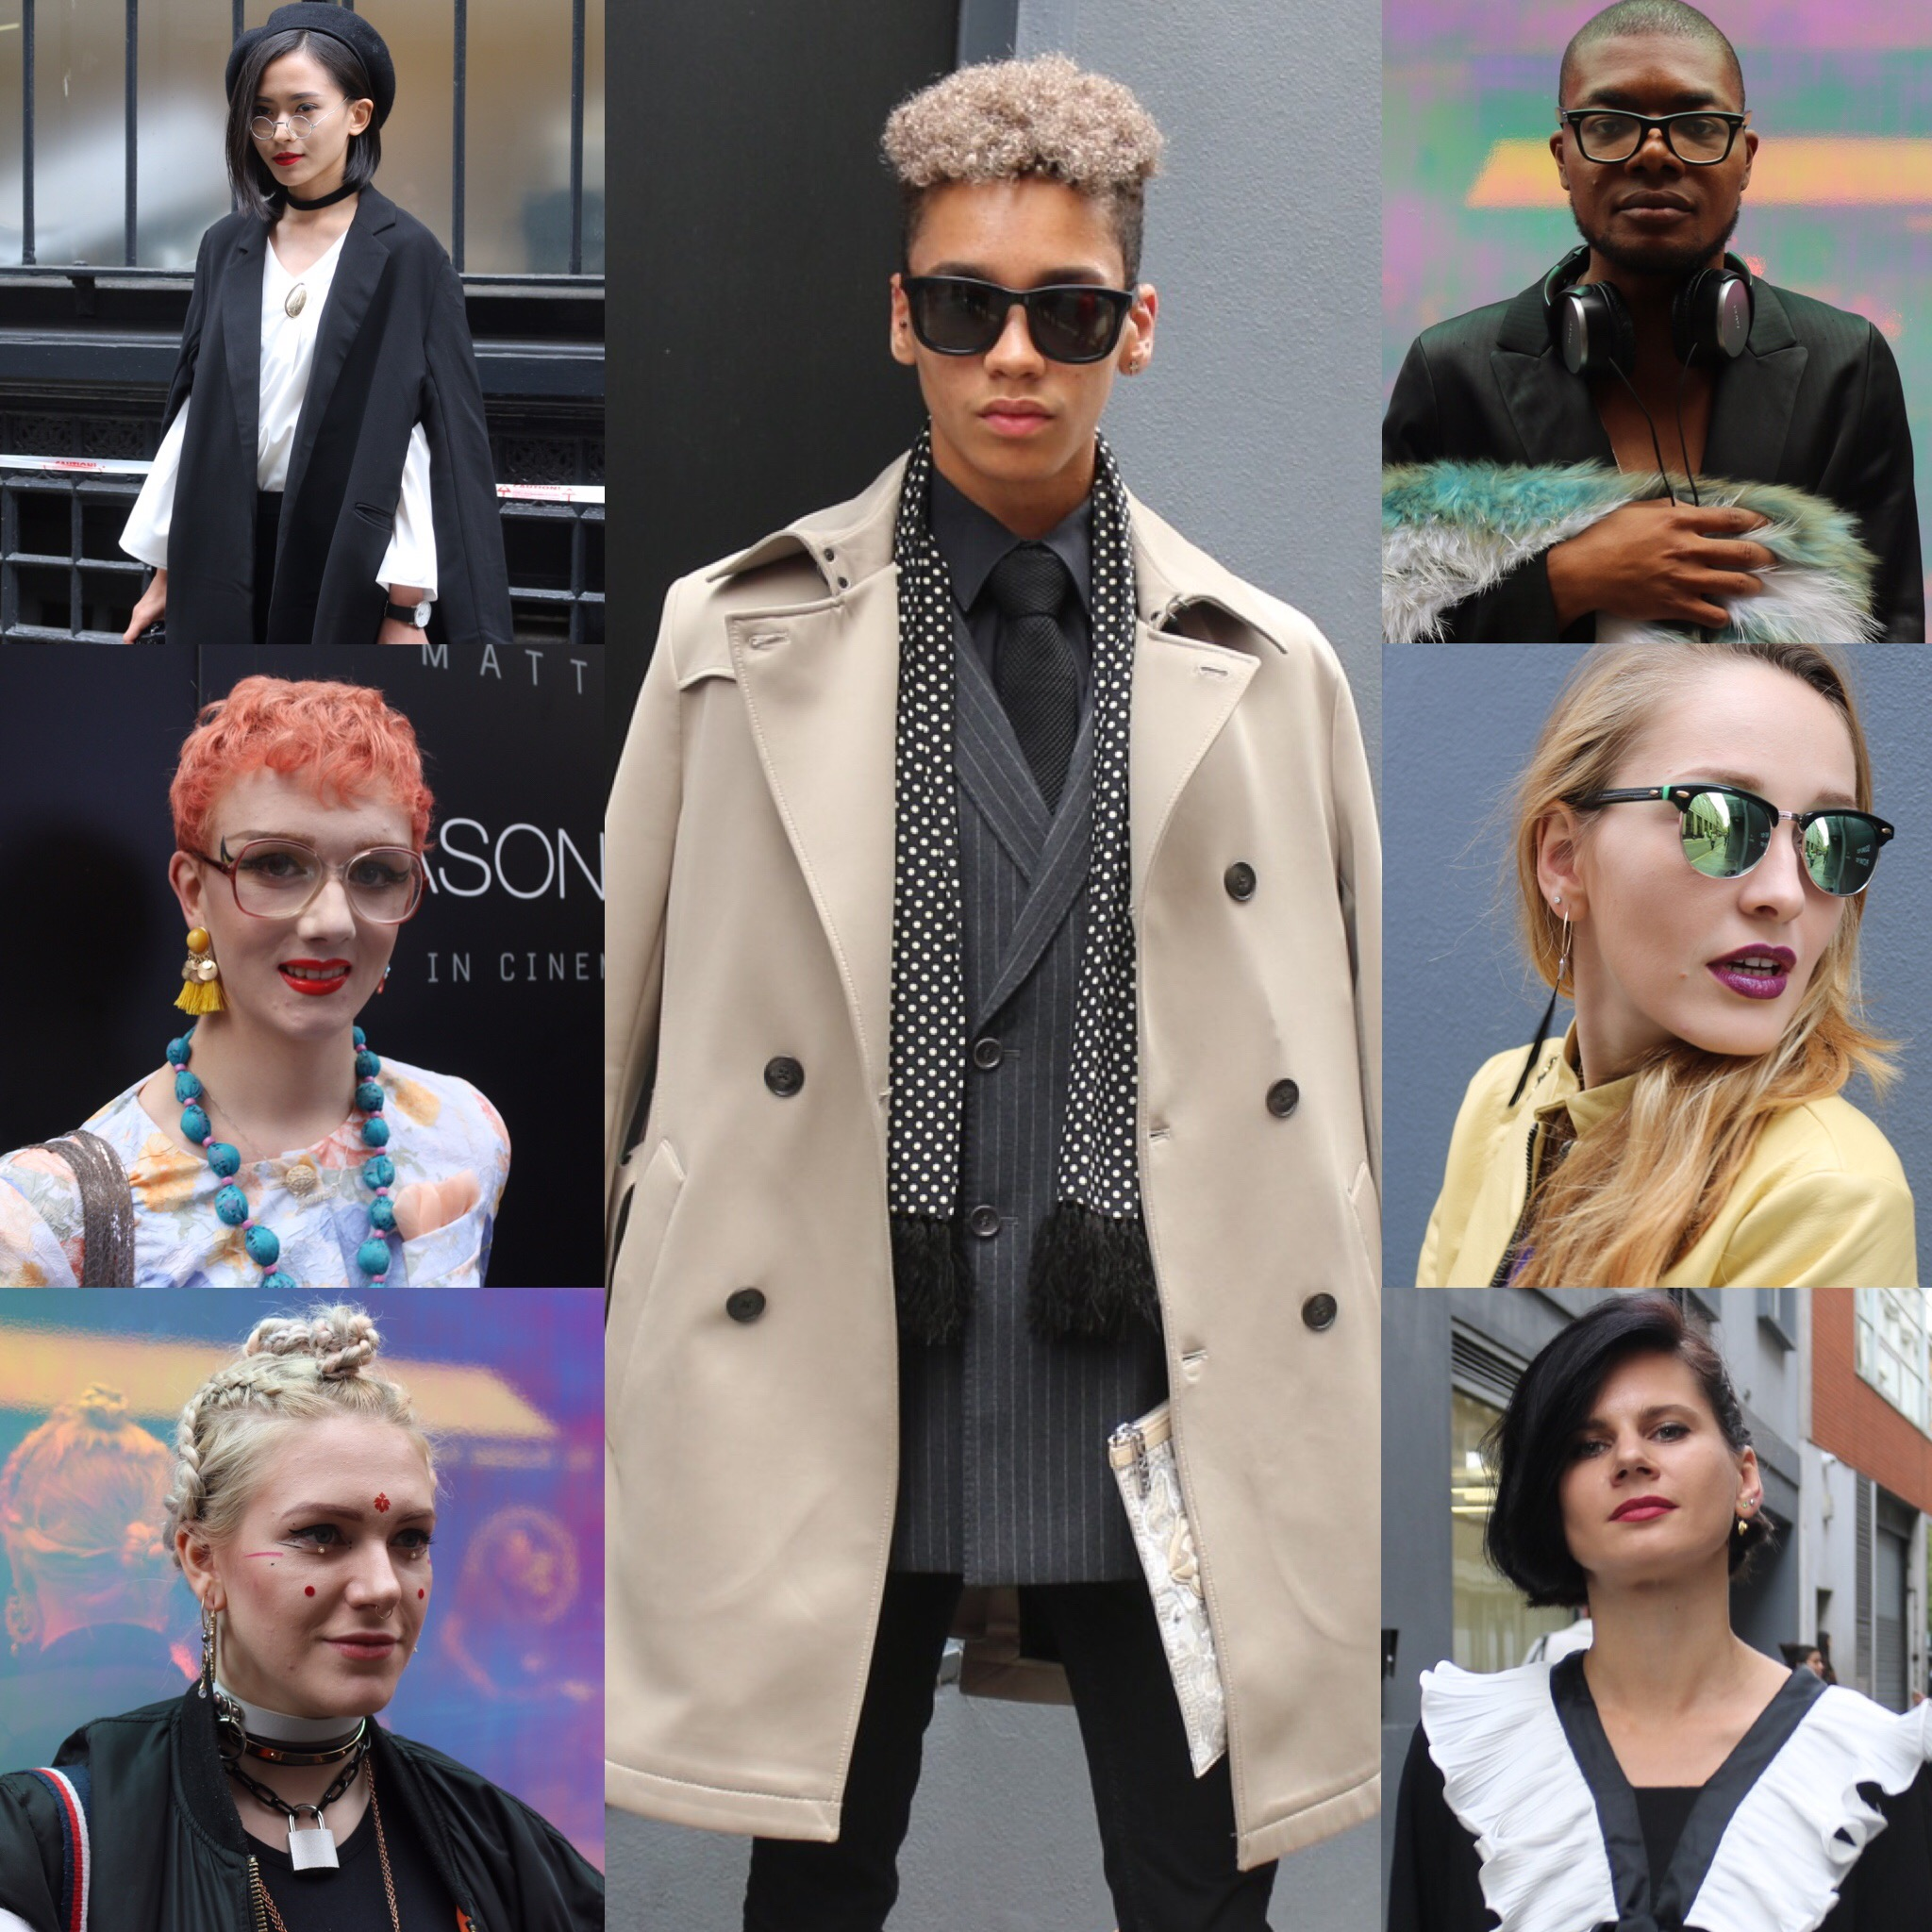 Caught up with some of my favorite street styled during #LFW